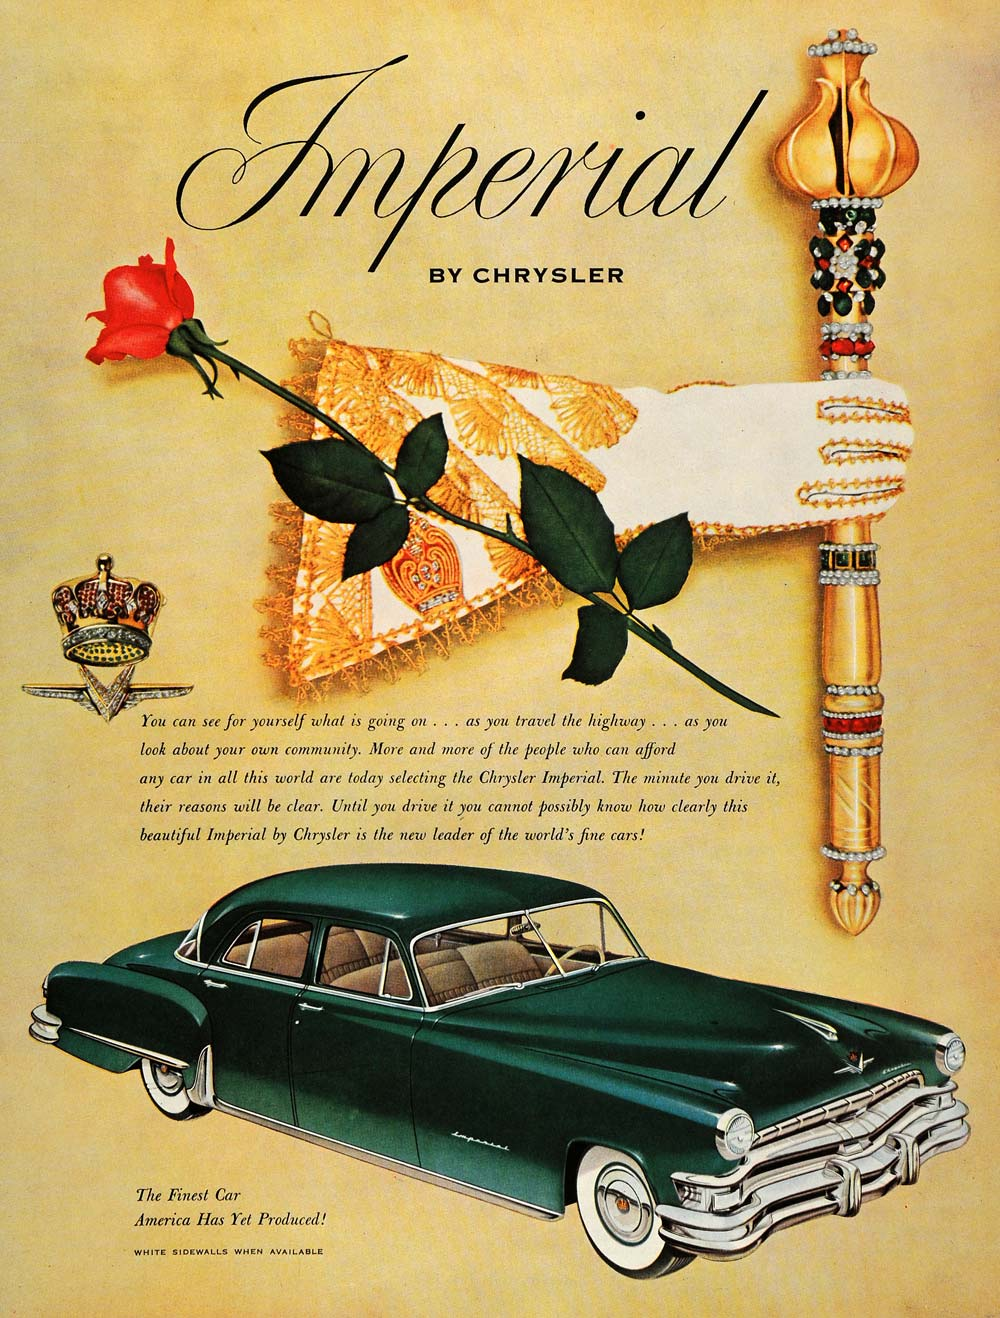 1952 Ad Green Imperial Chrysler Automobile Rose Wand - ORIGINAL ADVERTISING HDL1